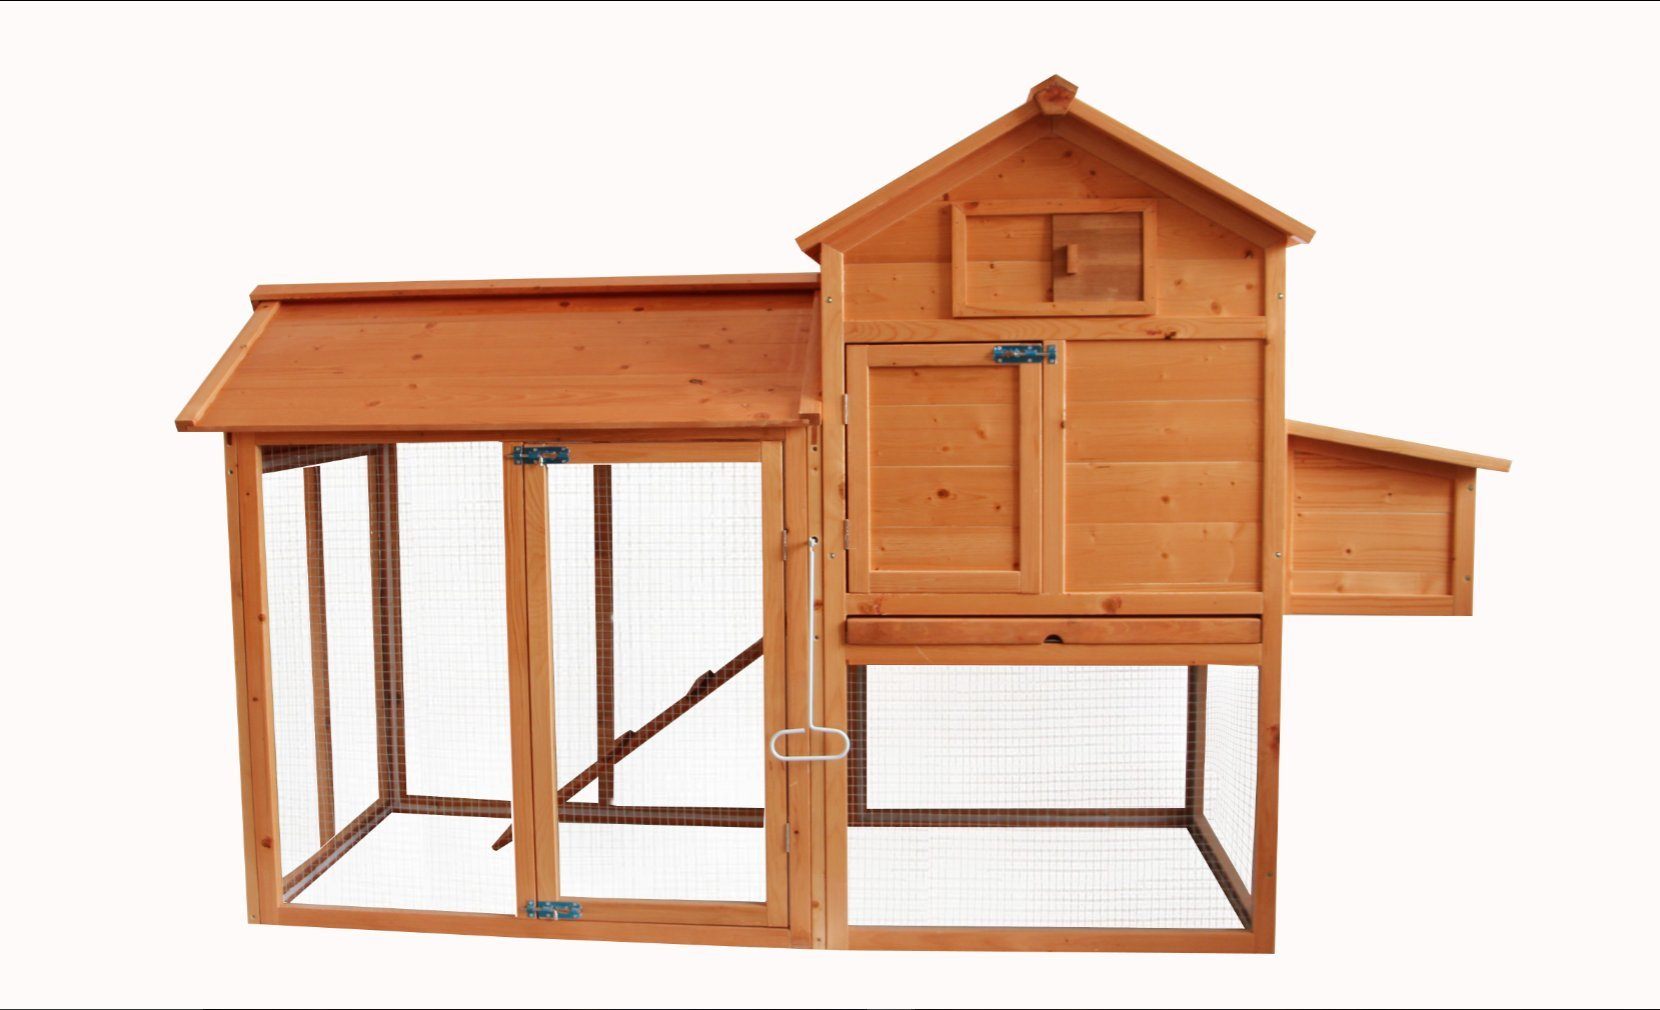 MCombo 0310 Backyard Deluxe Wooden Chicken Rabbit Poultry Coop by MCombo